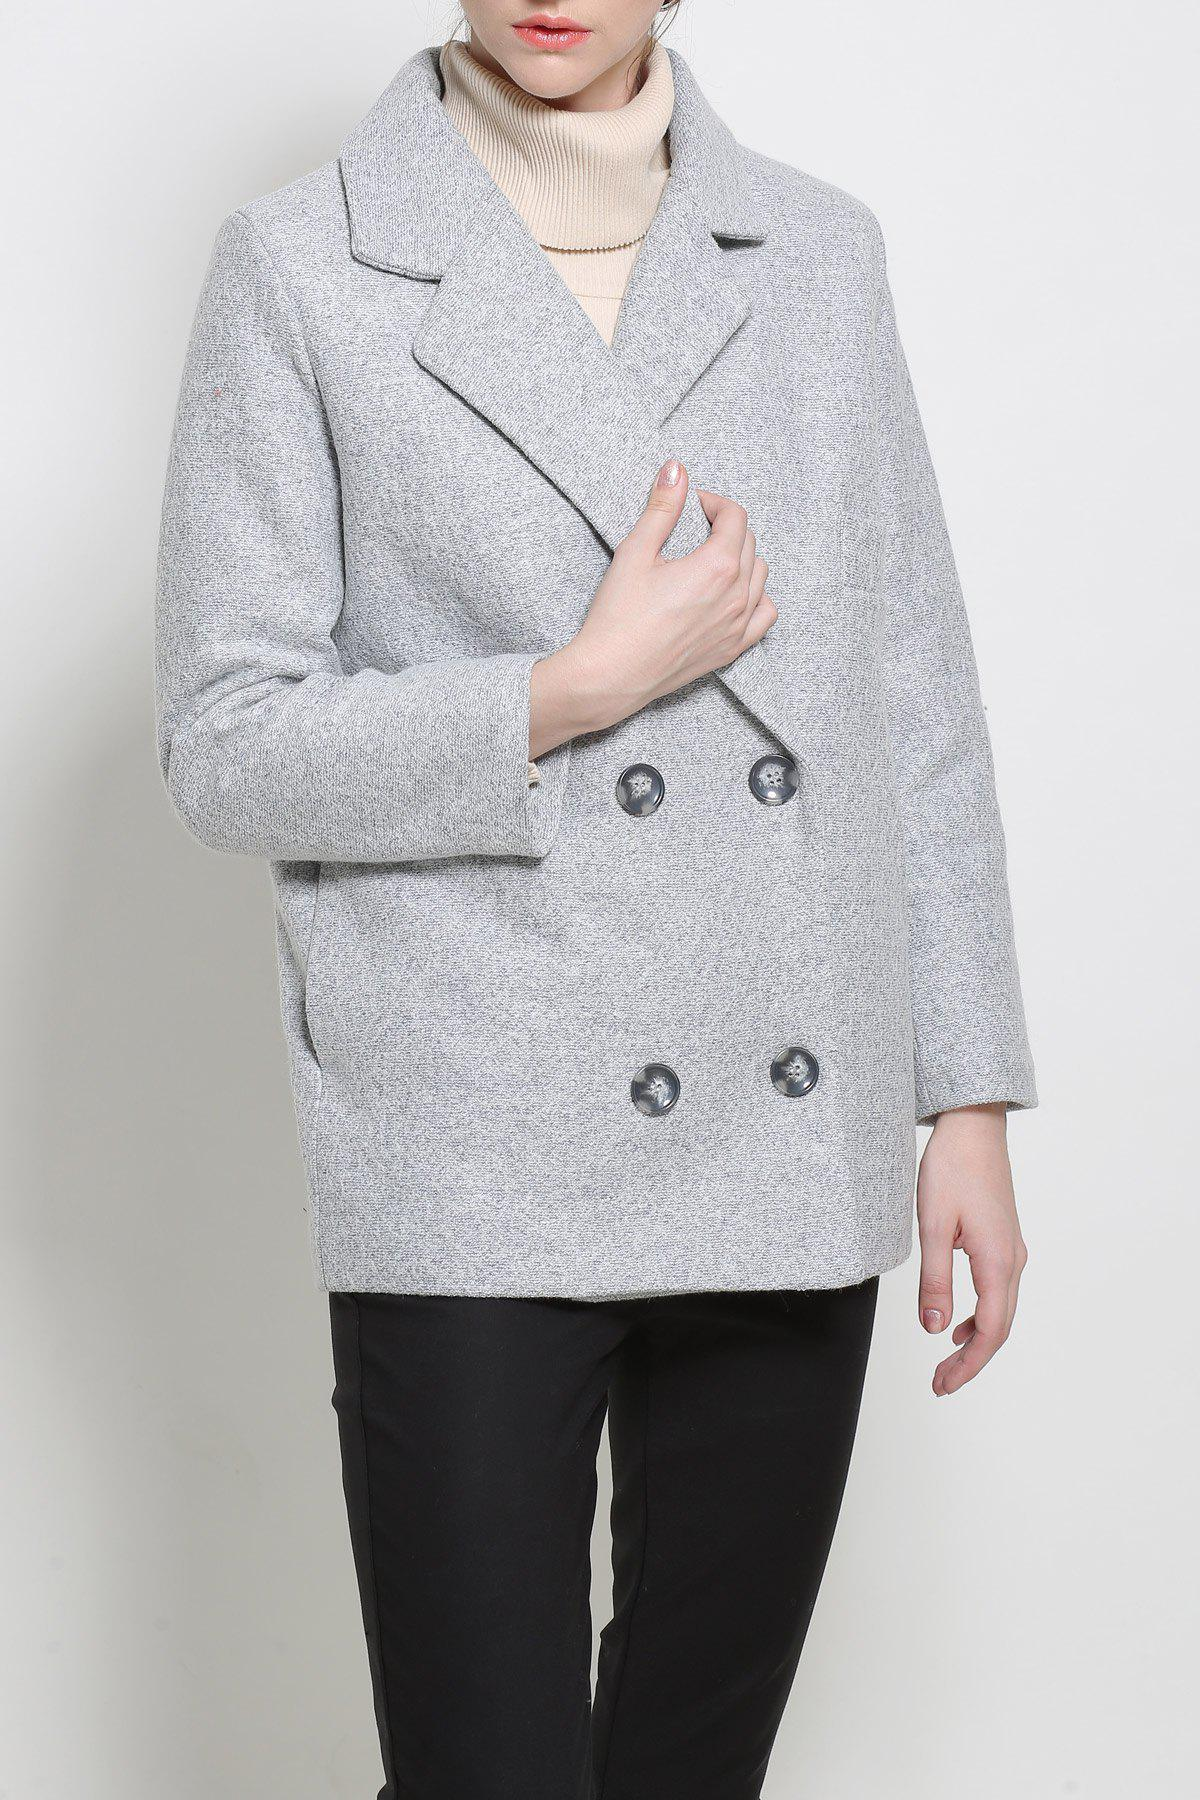 Lapel Pea Coat In Wool Blend - LIGHT GRAY S